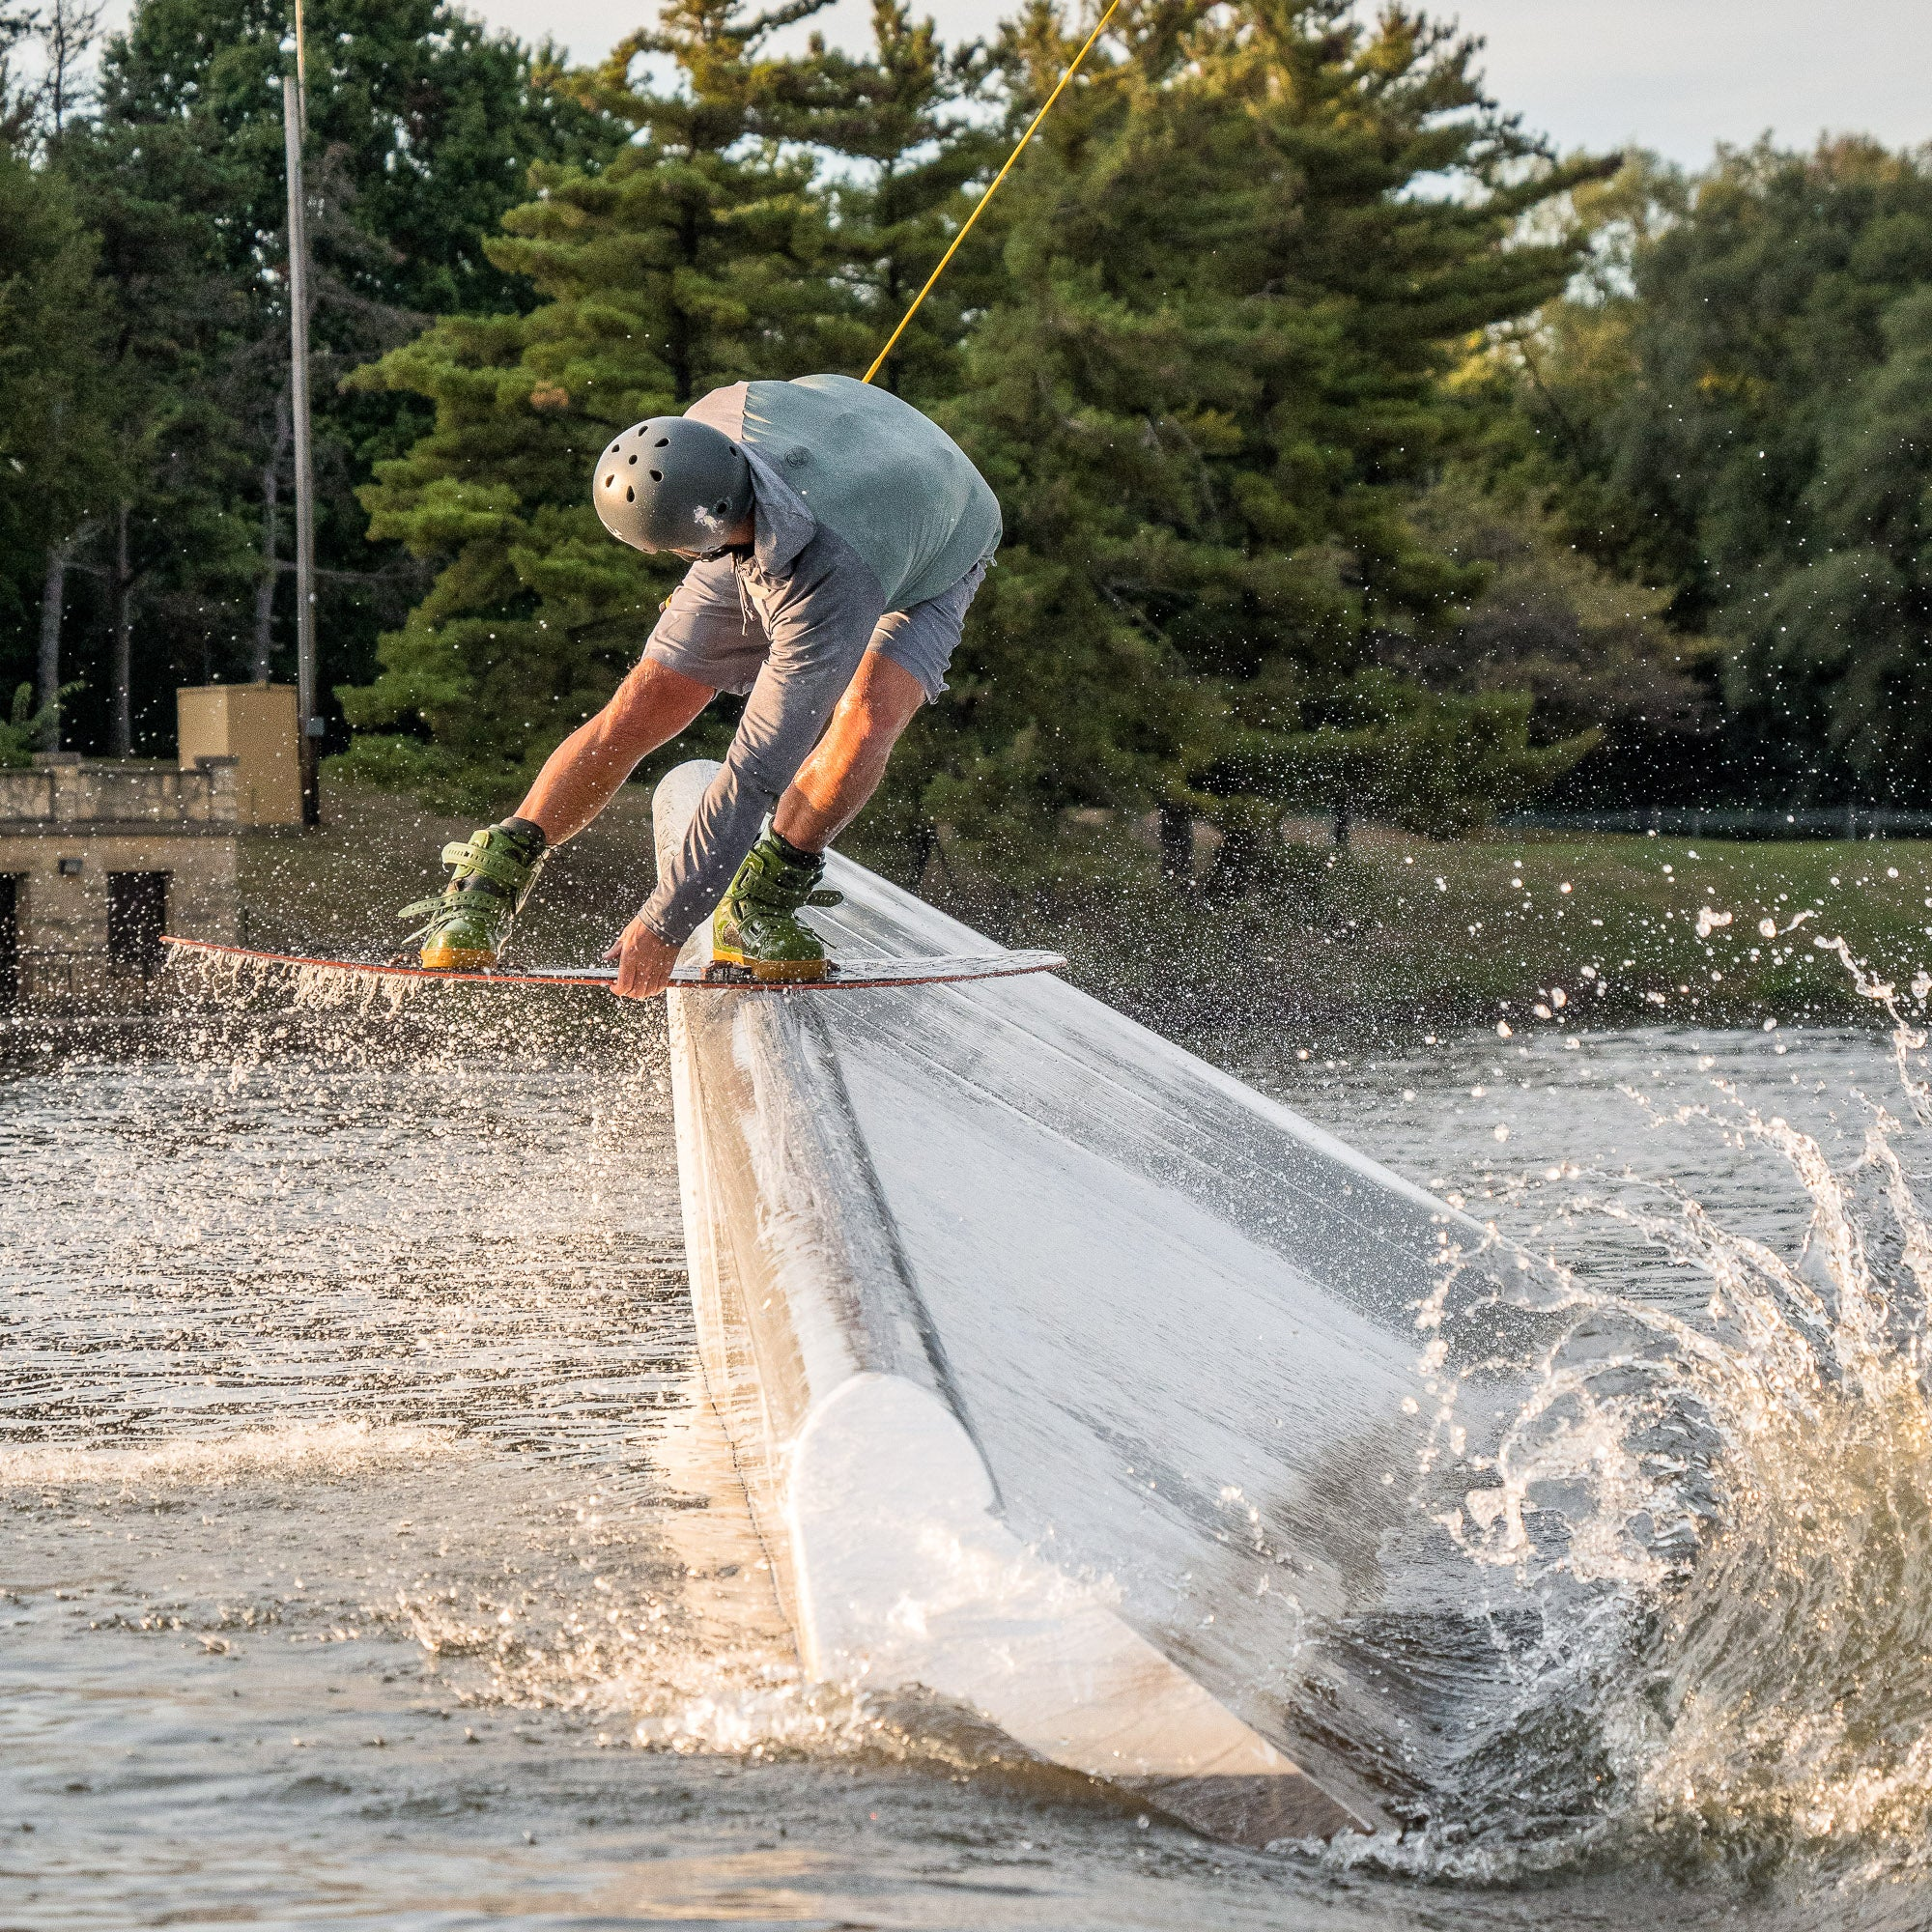 West Rock Wake Park's Full Size Cable